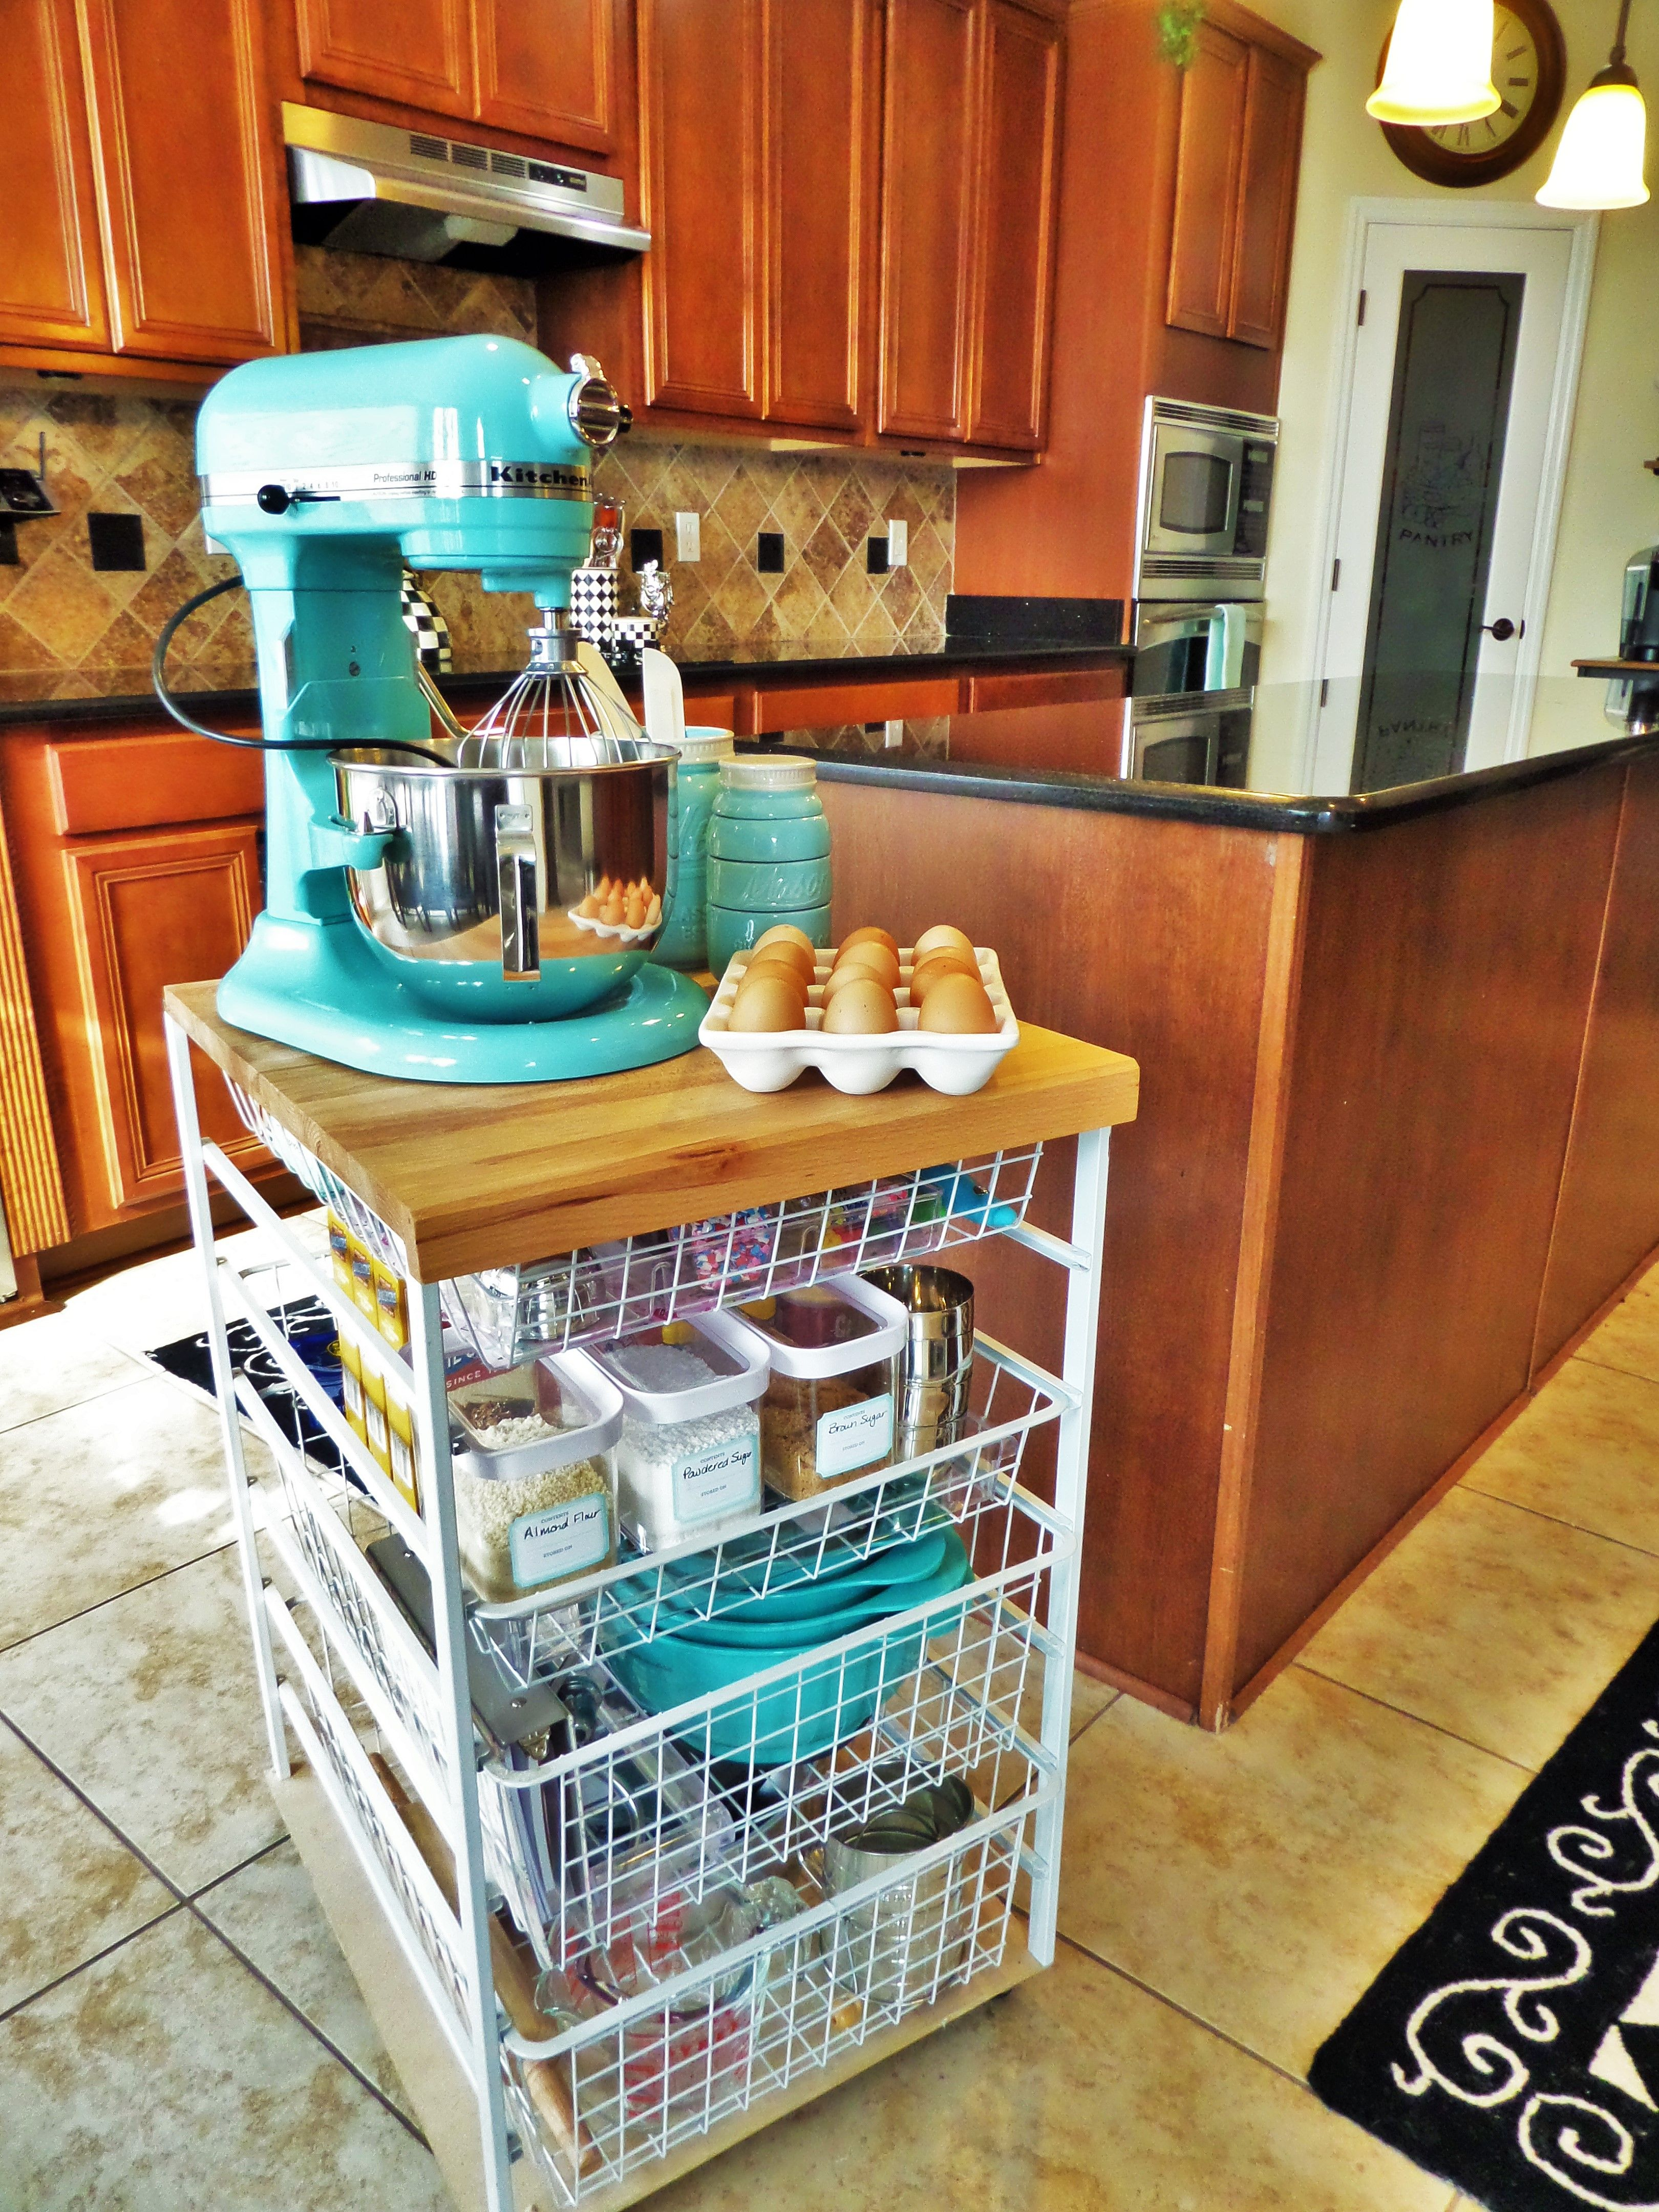 Merveilleux Baking Station A Great Use For An Ikea Cart?! Couldnu0027t Use The Mixer But  Awesome For Baking Storage